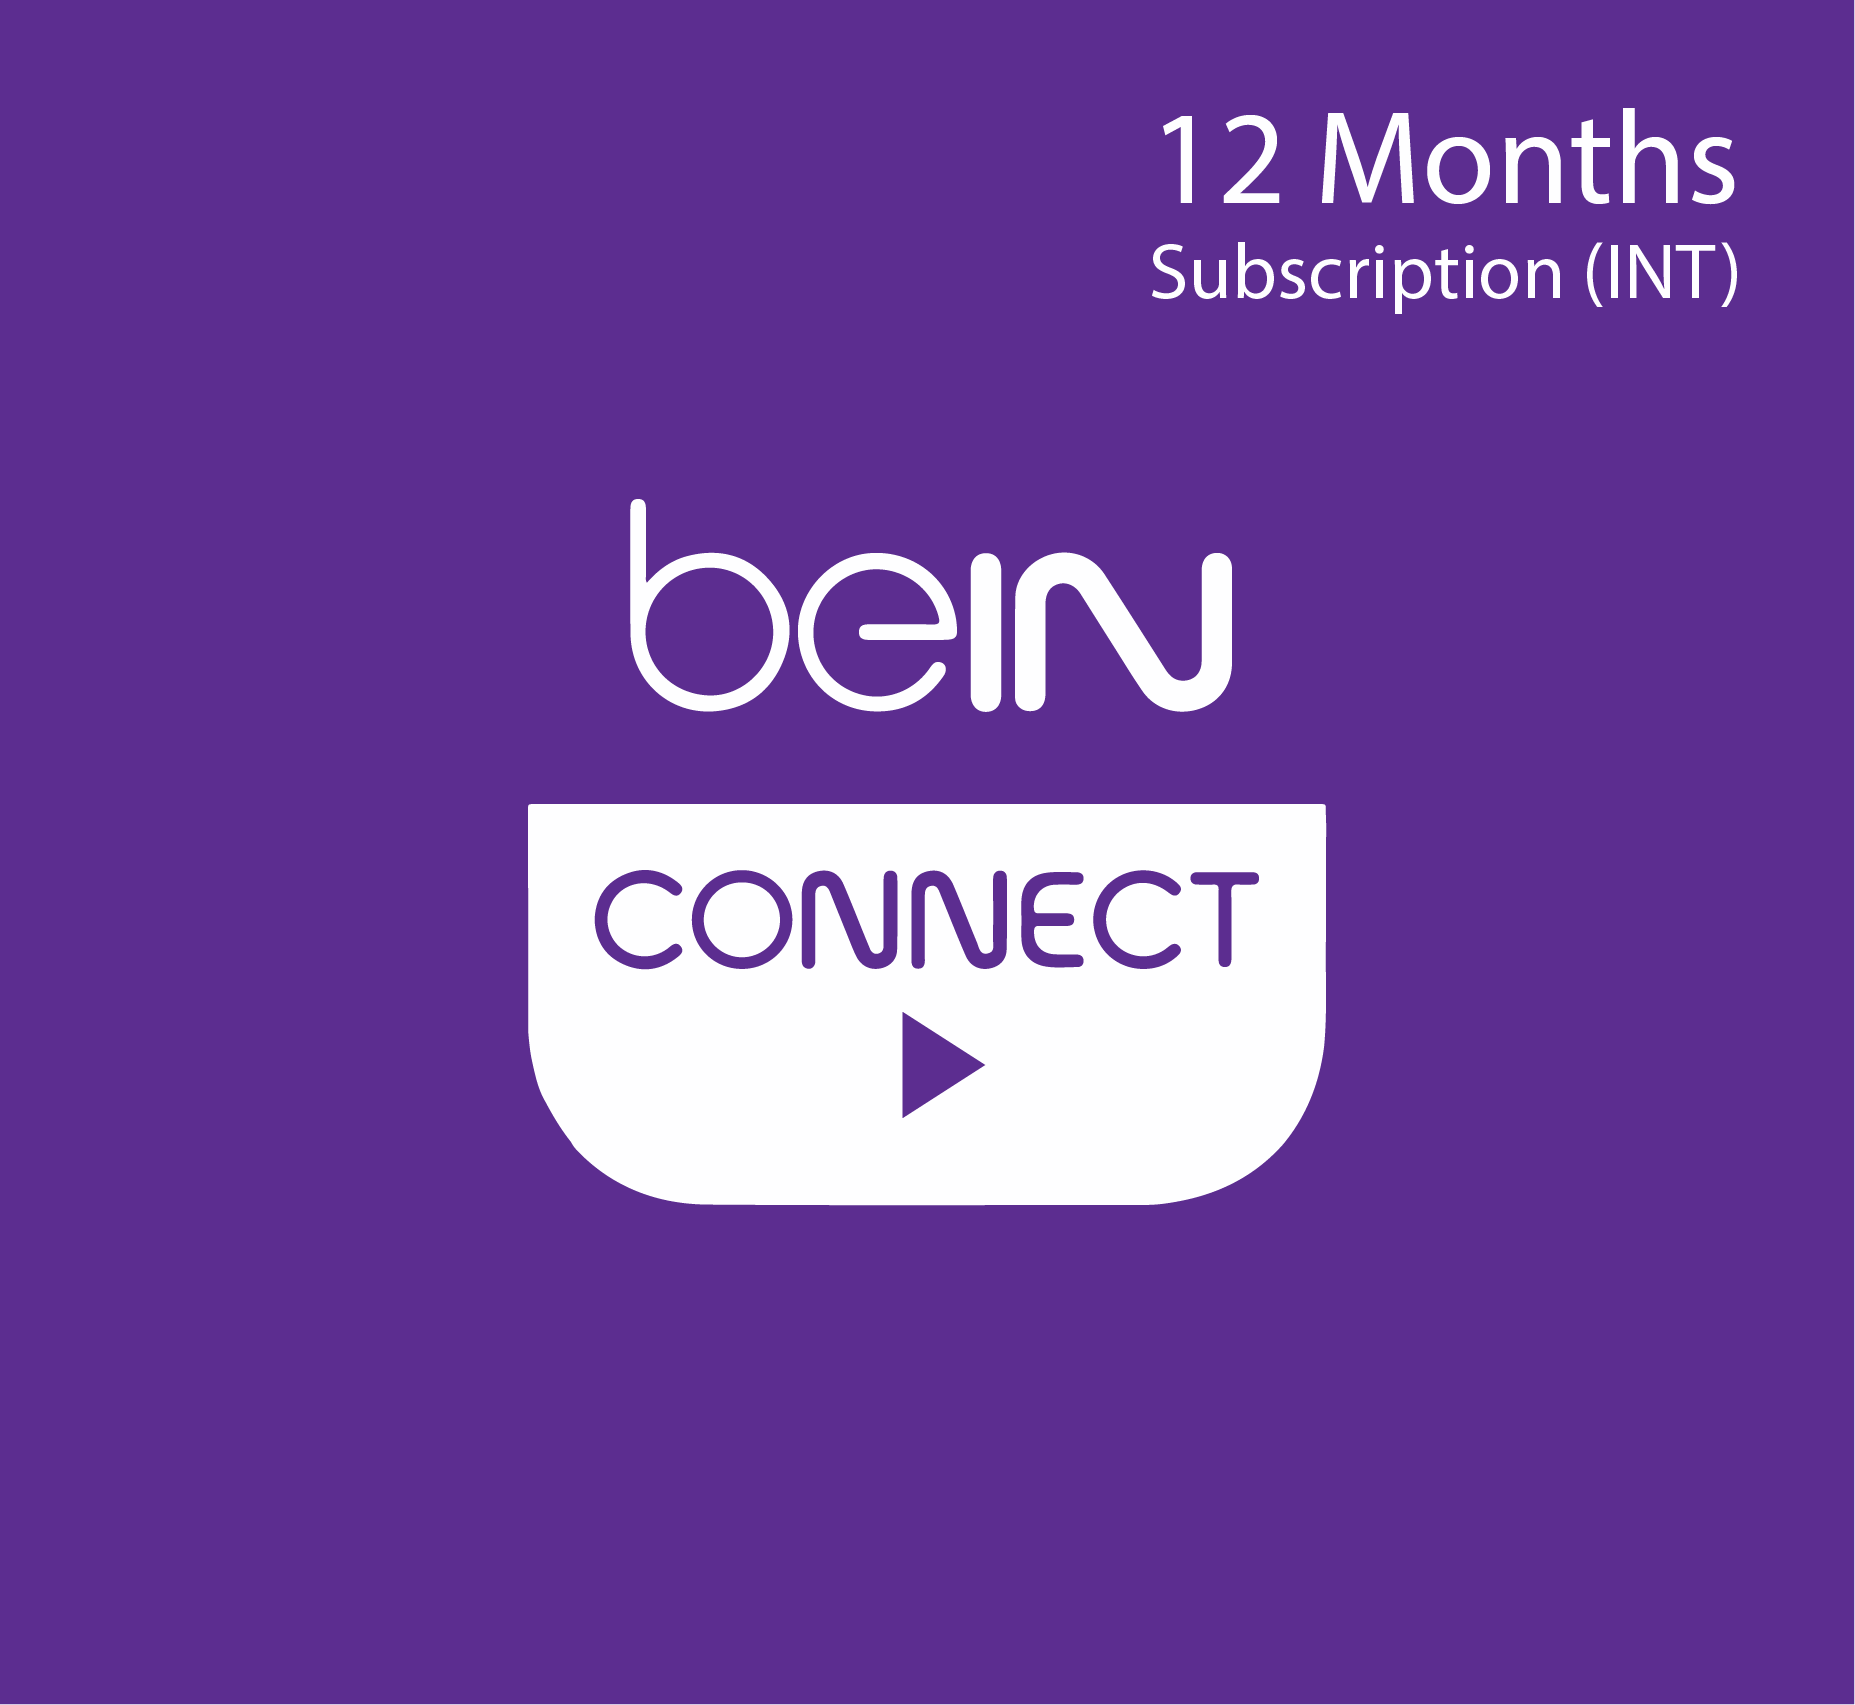 beIN Connect subscription - 12 Months (INT)